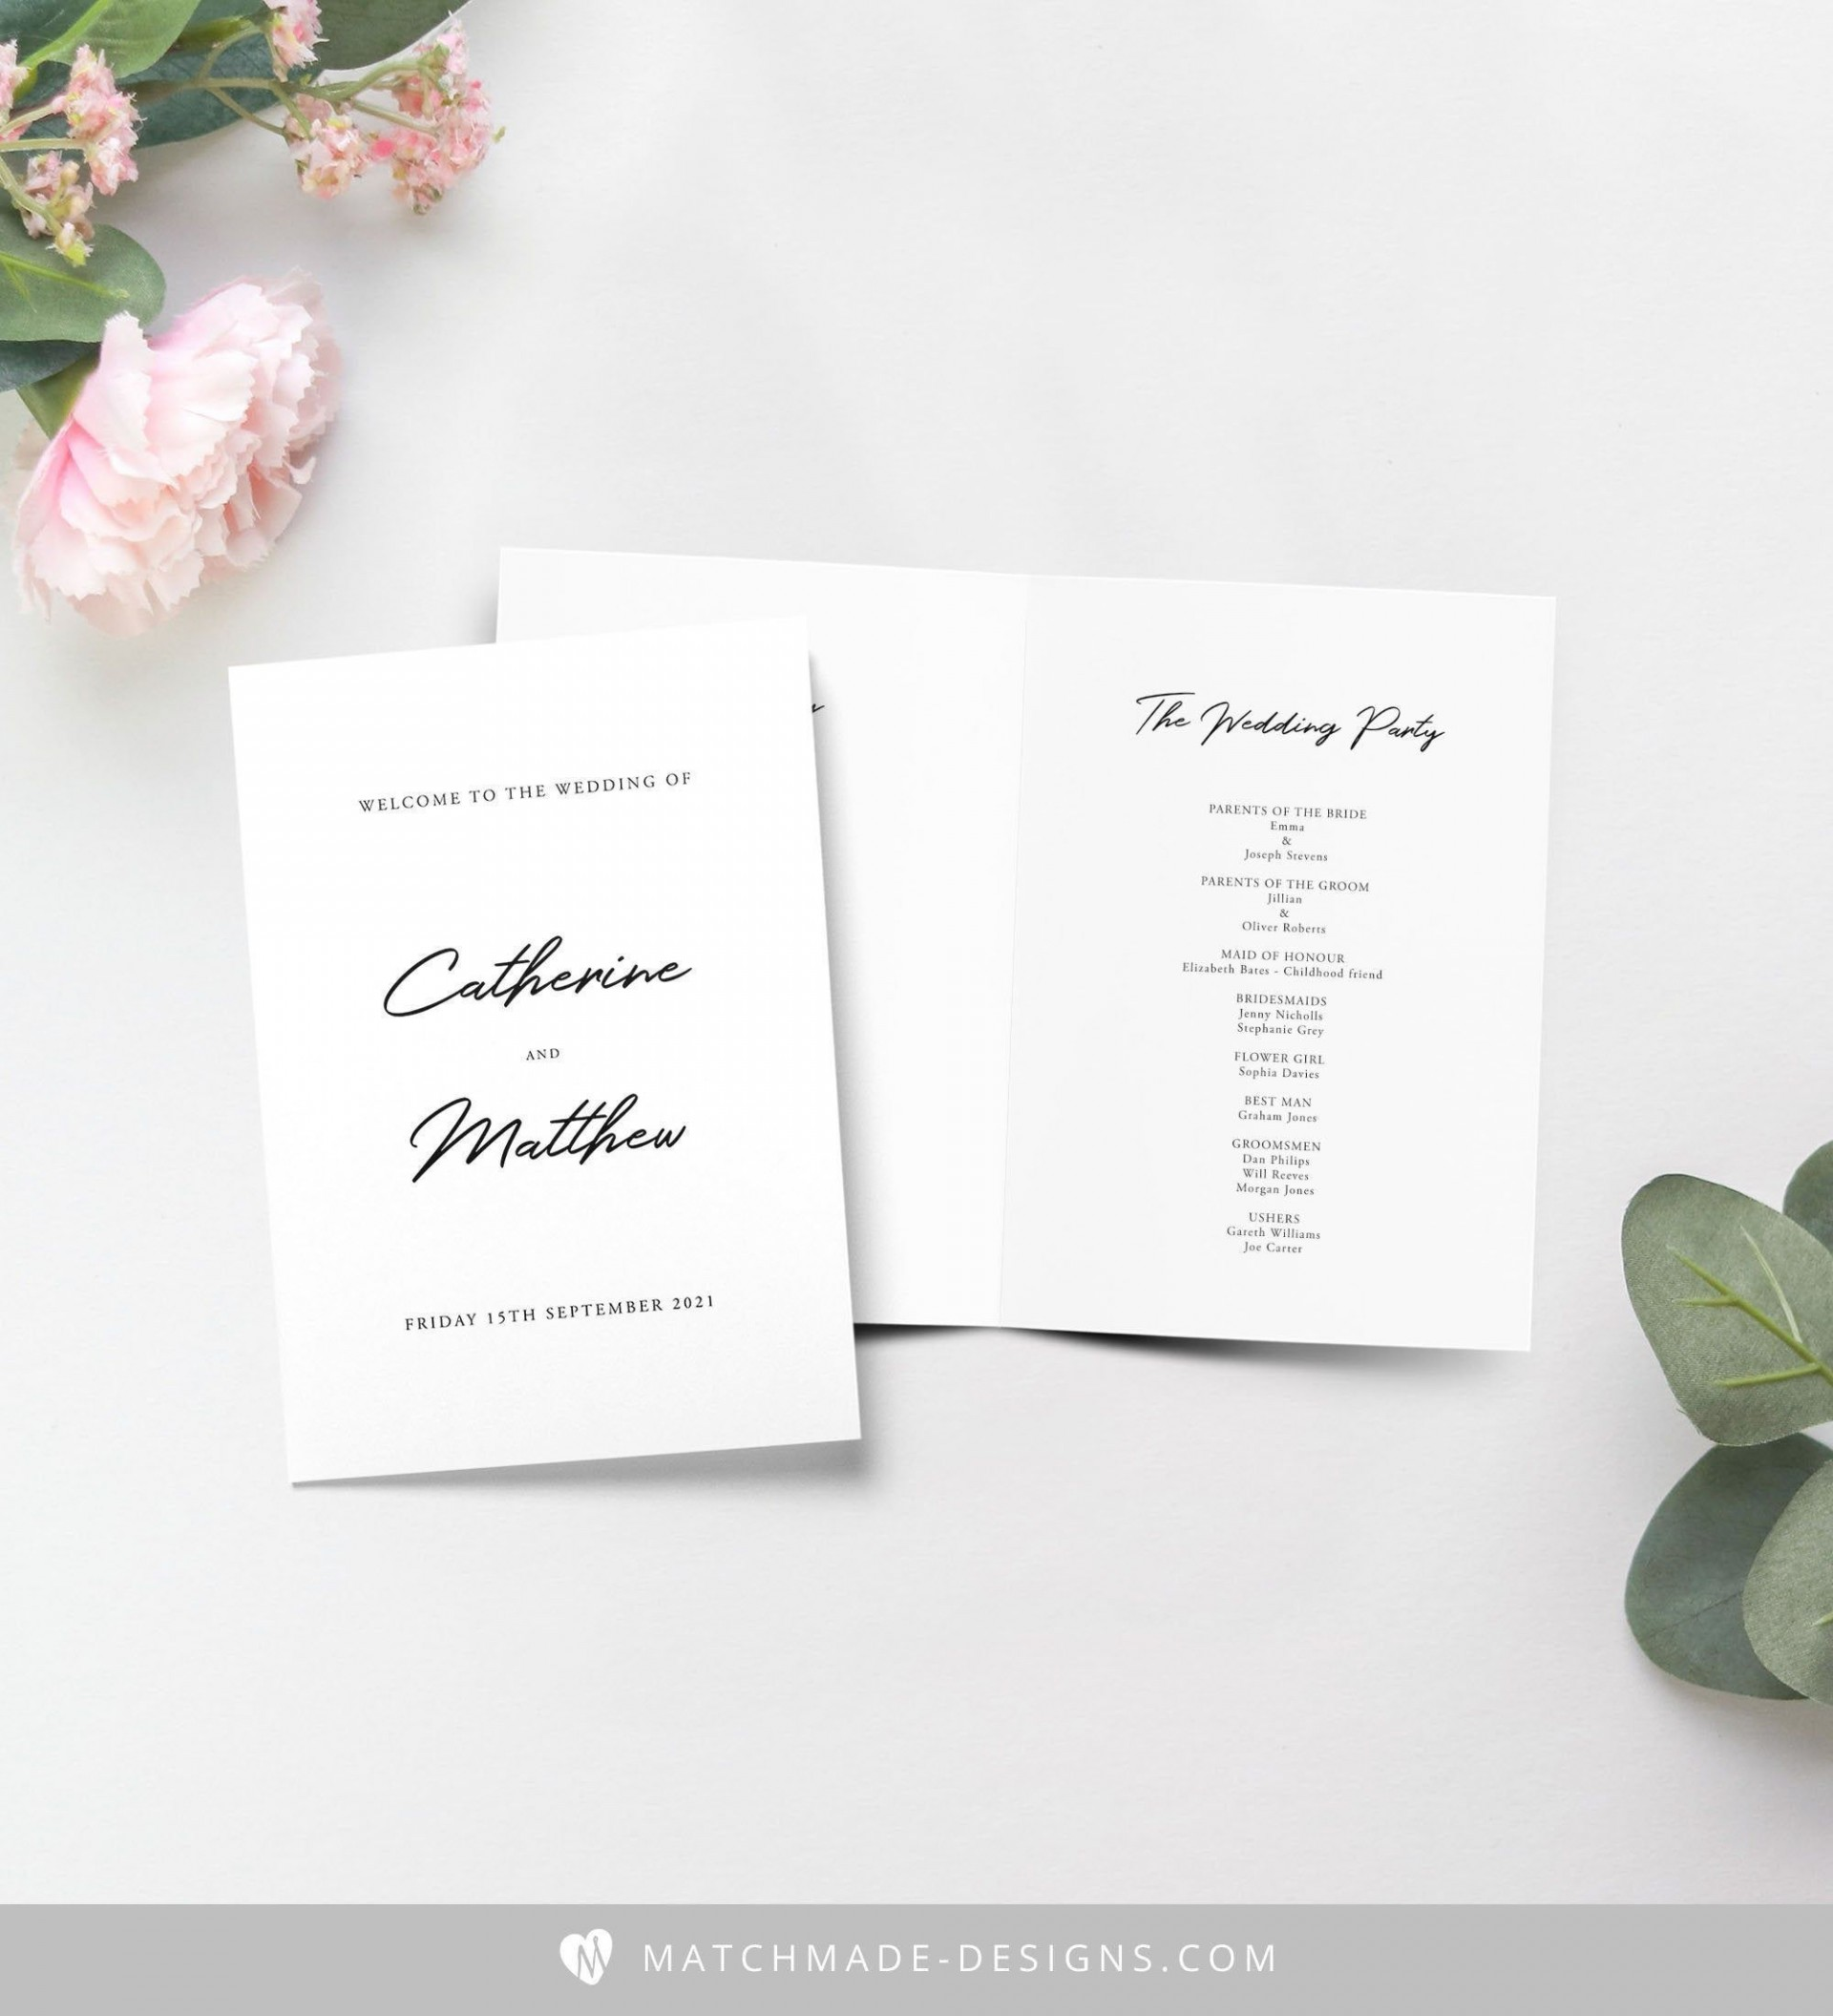 001 Dreaded Wedding Order Of Service Template Pdf Design 1920